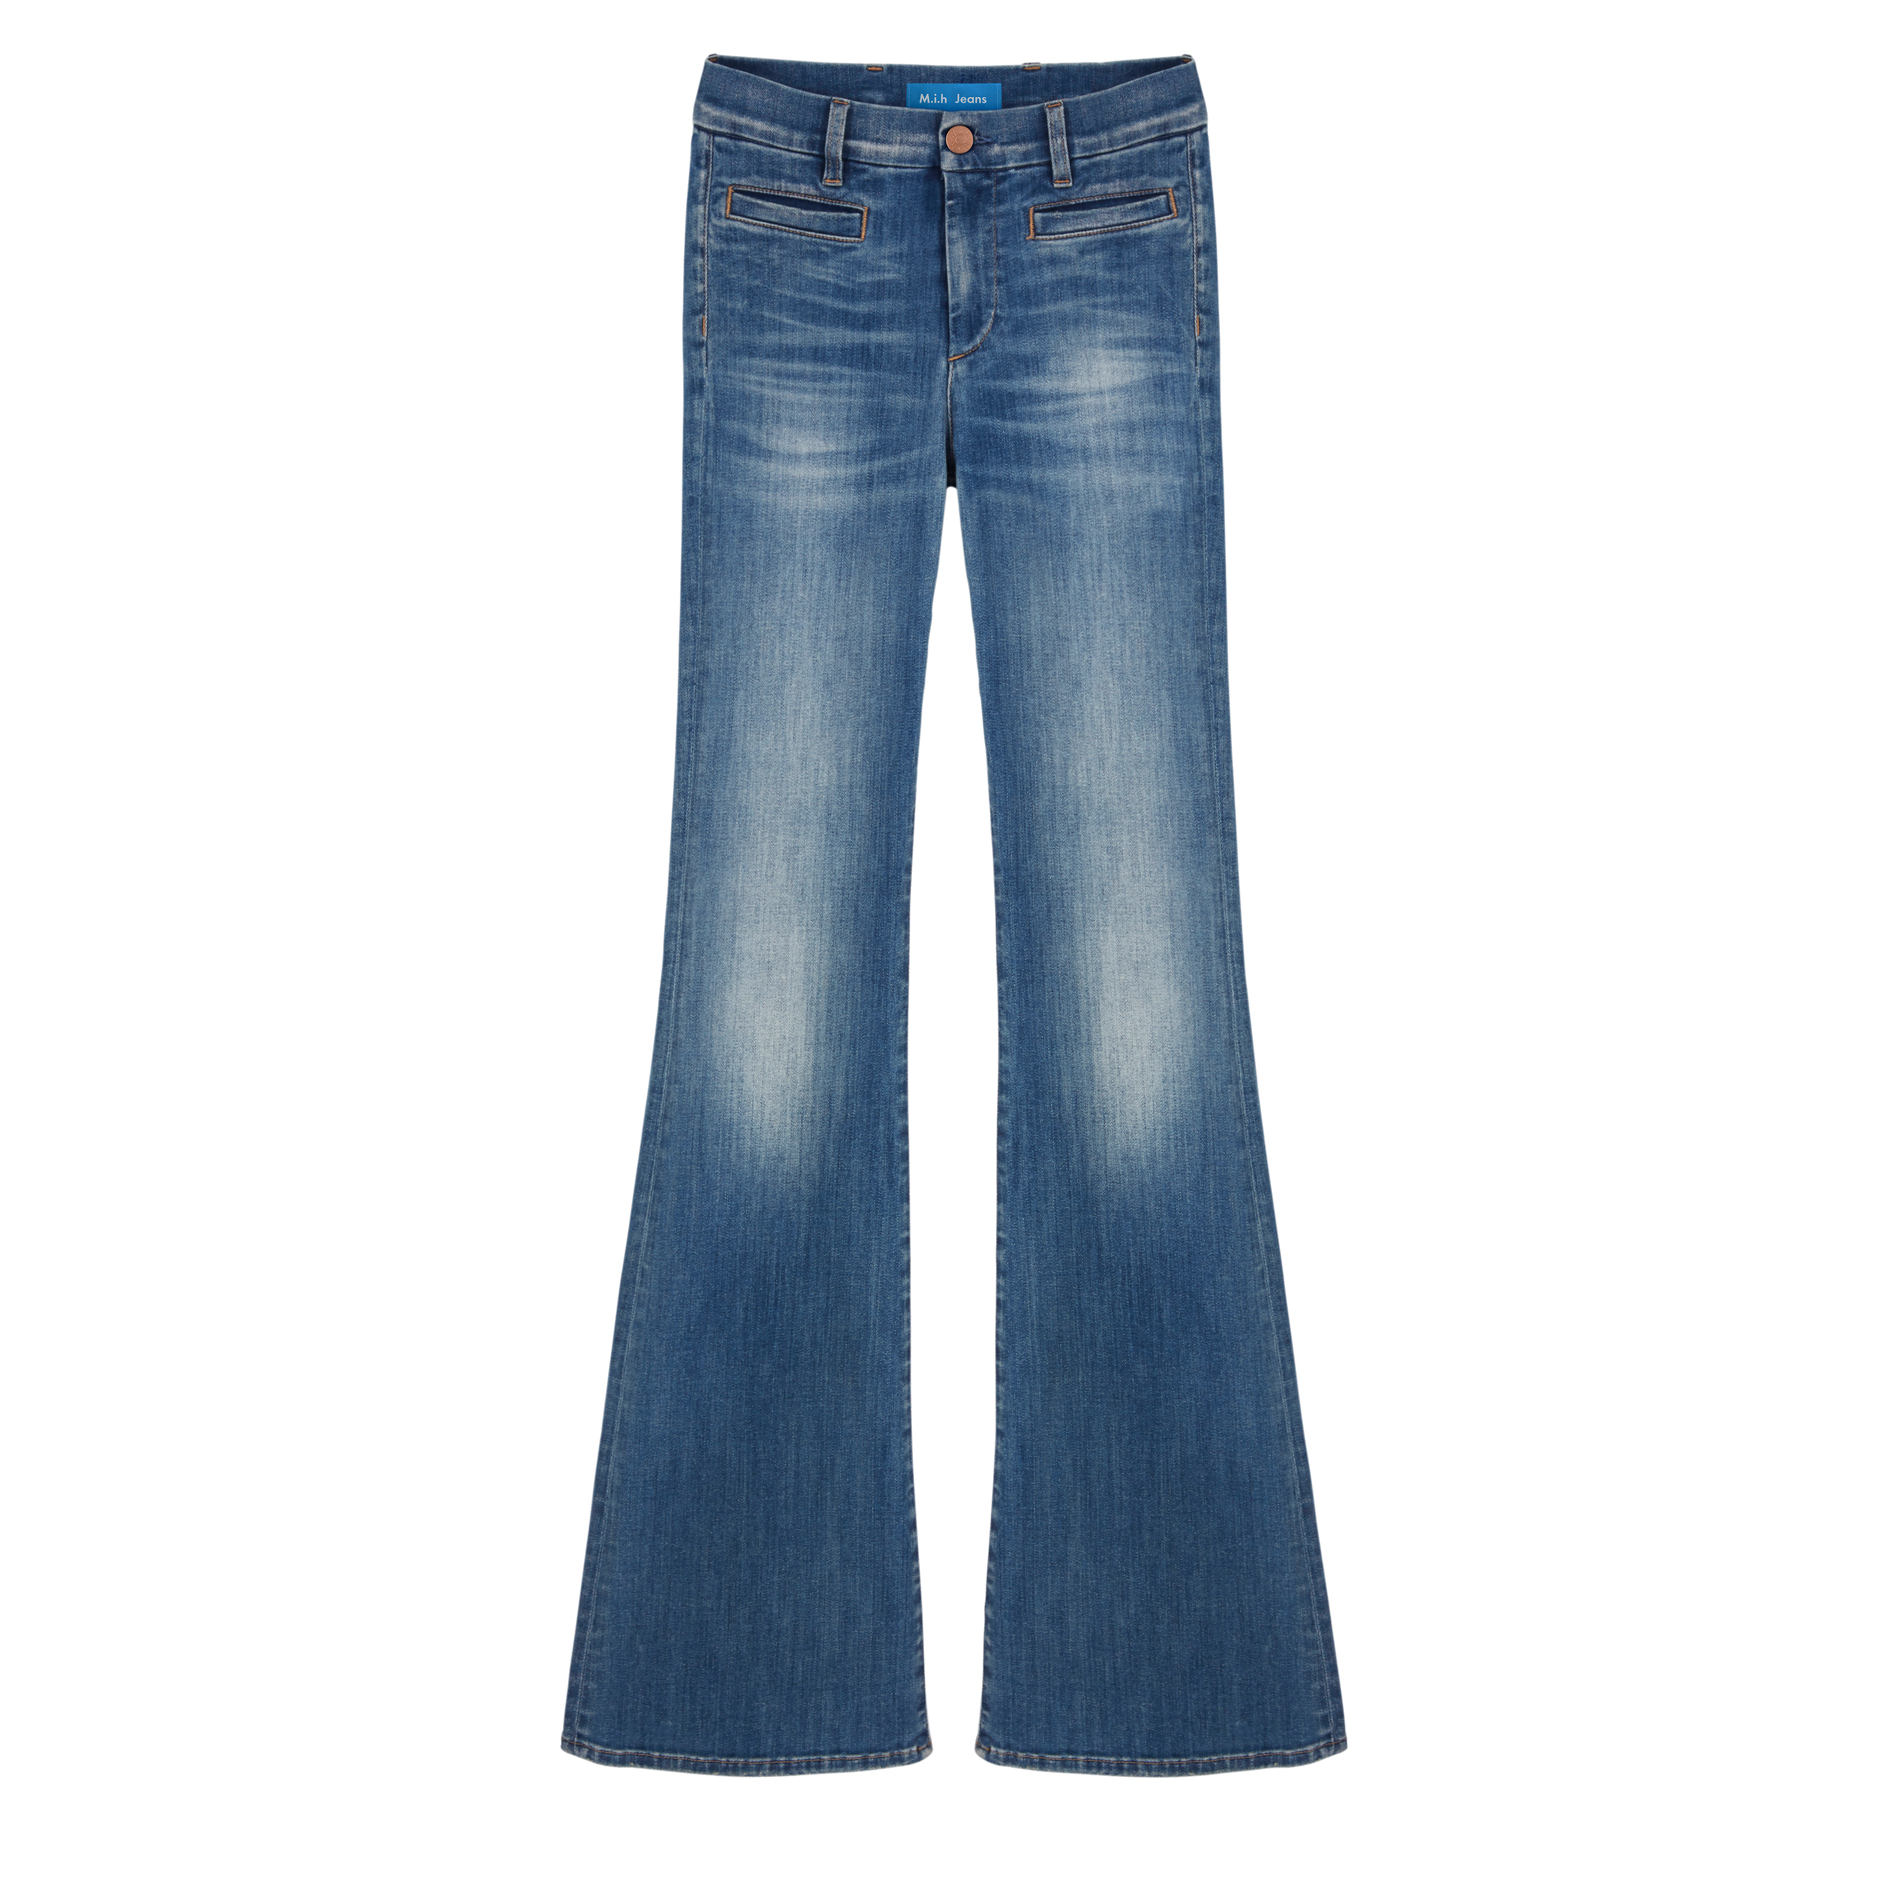 <p><strong>Most-Worn Pair of Jeans</strong></p>